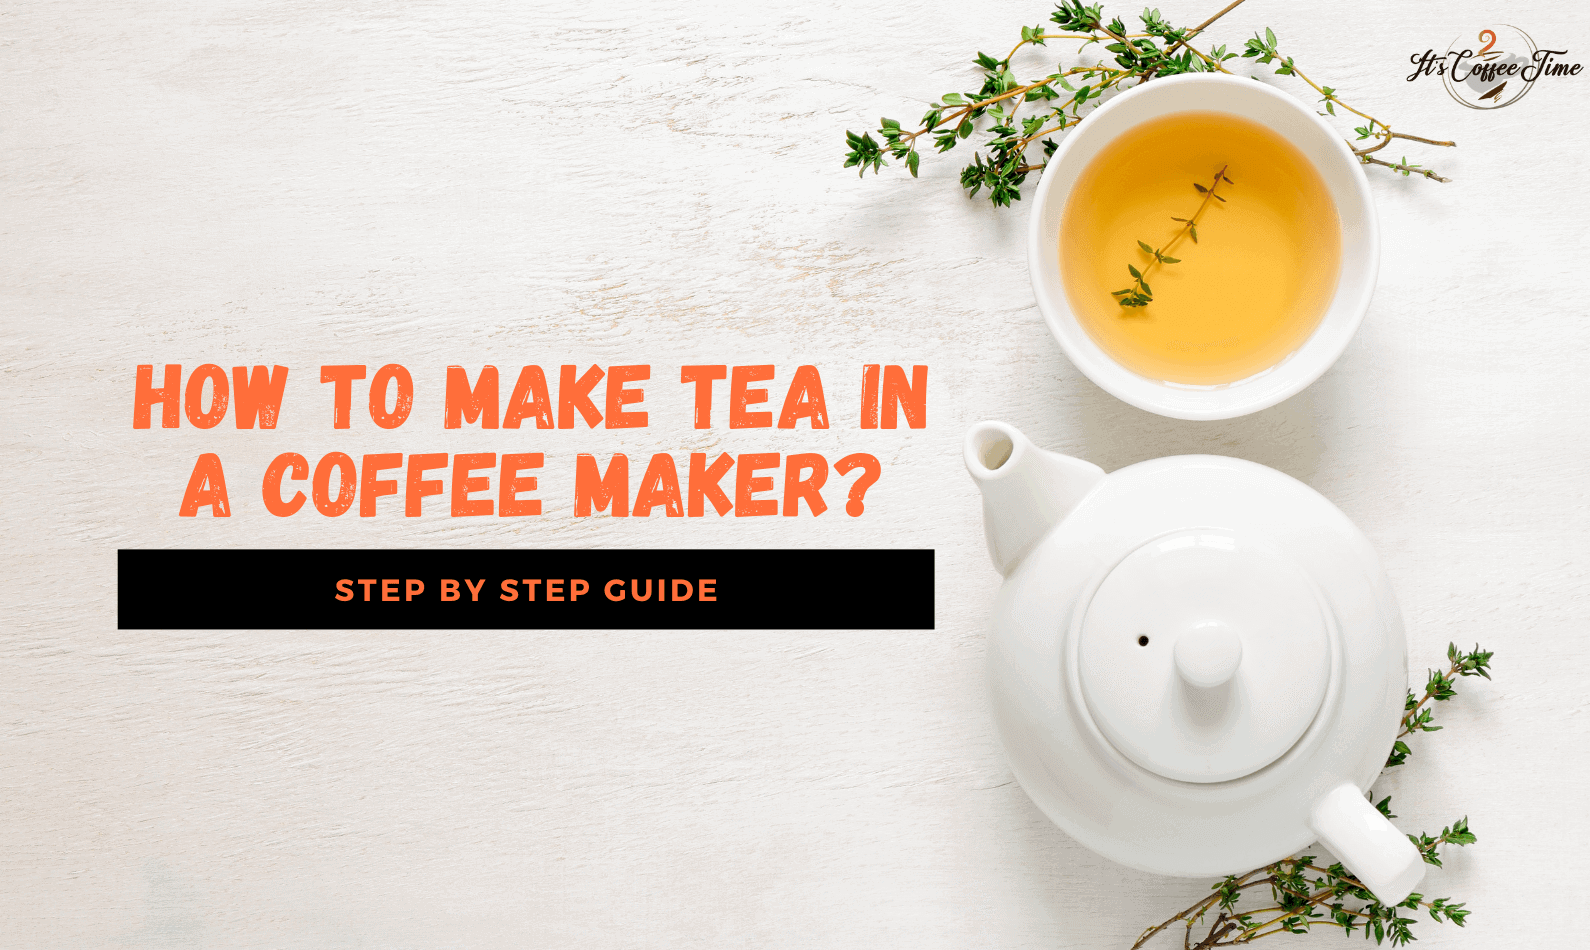 How to Make Tea in a Coffee Maker